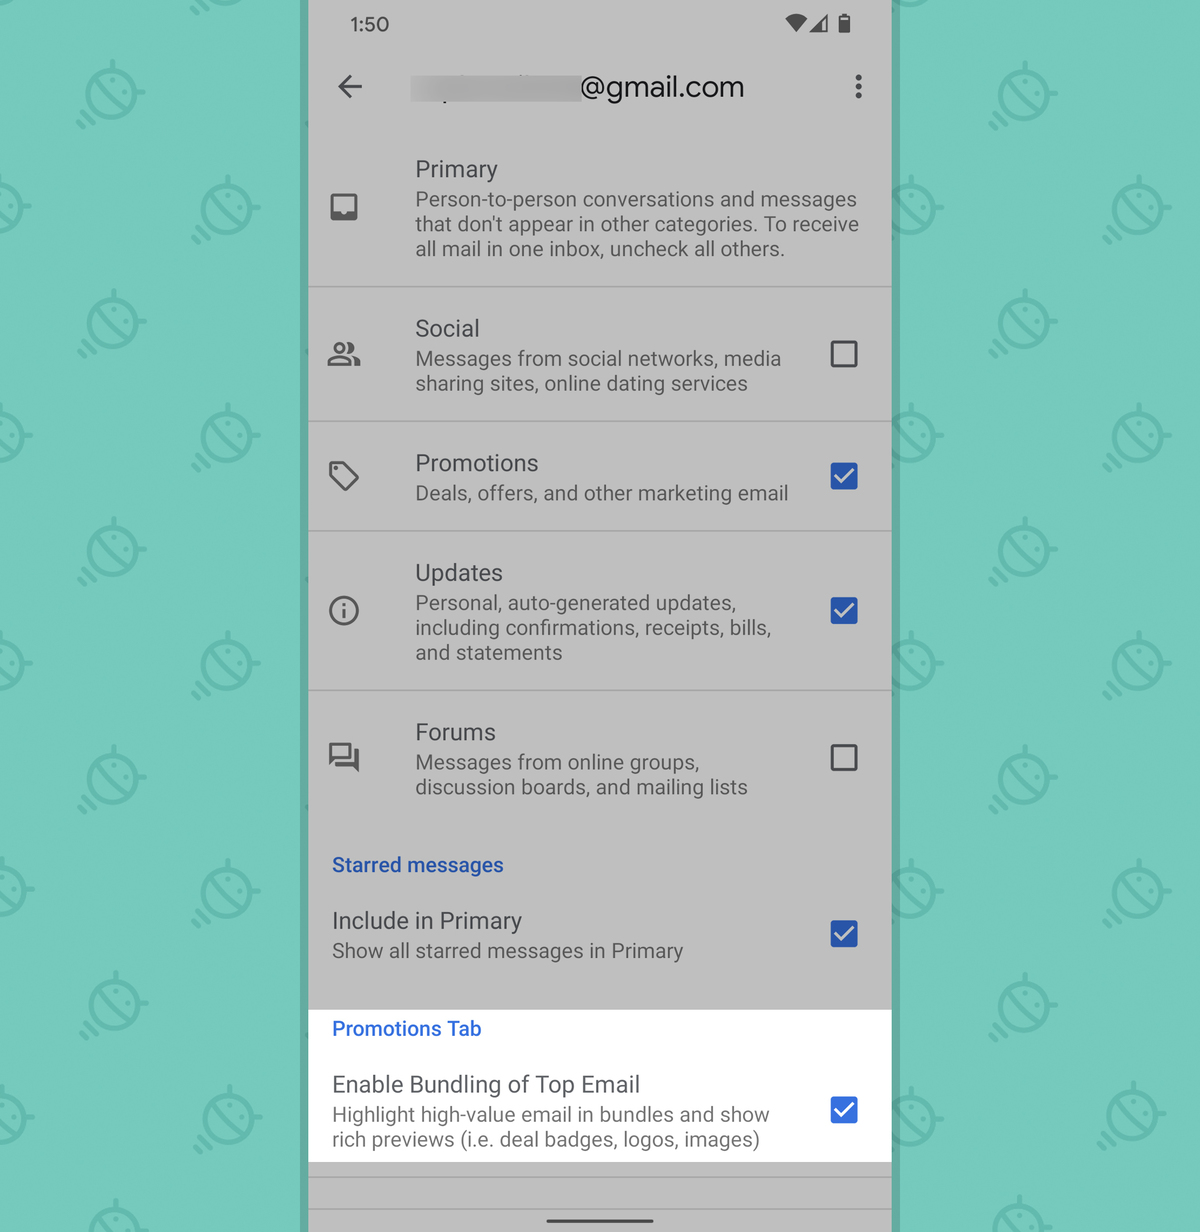 Gmail Android App: Promotions setting